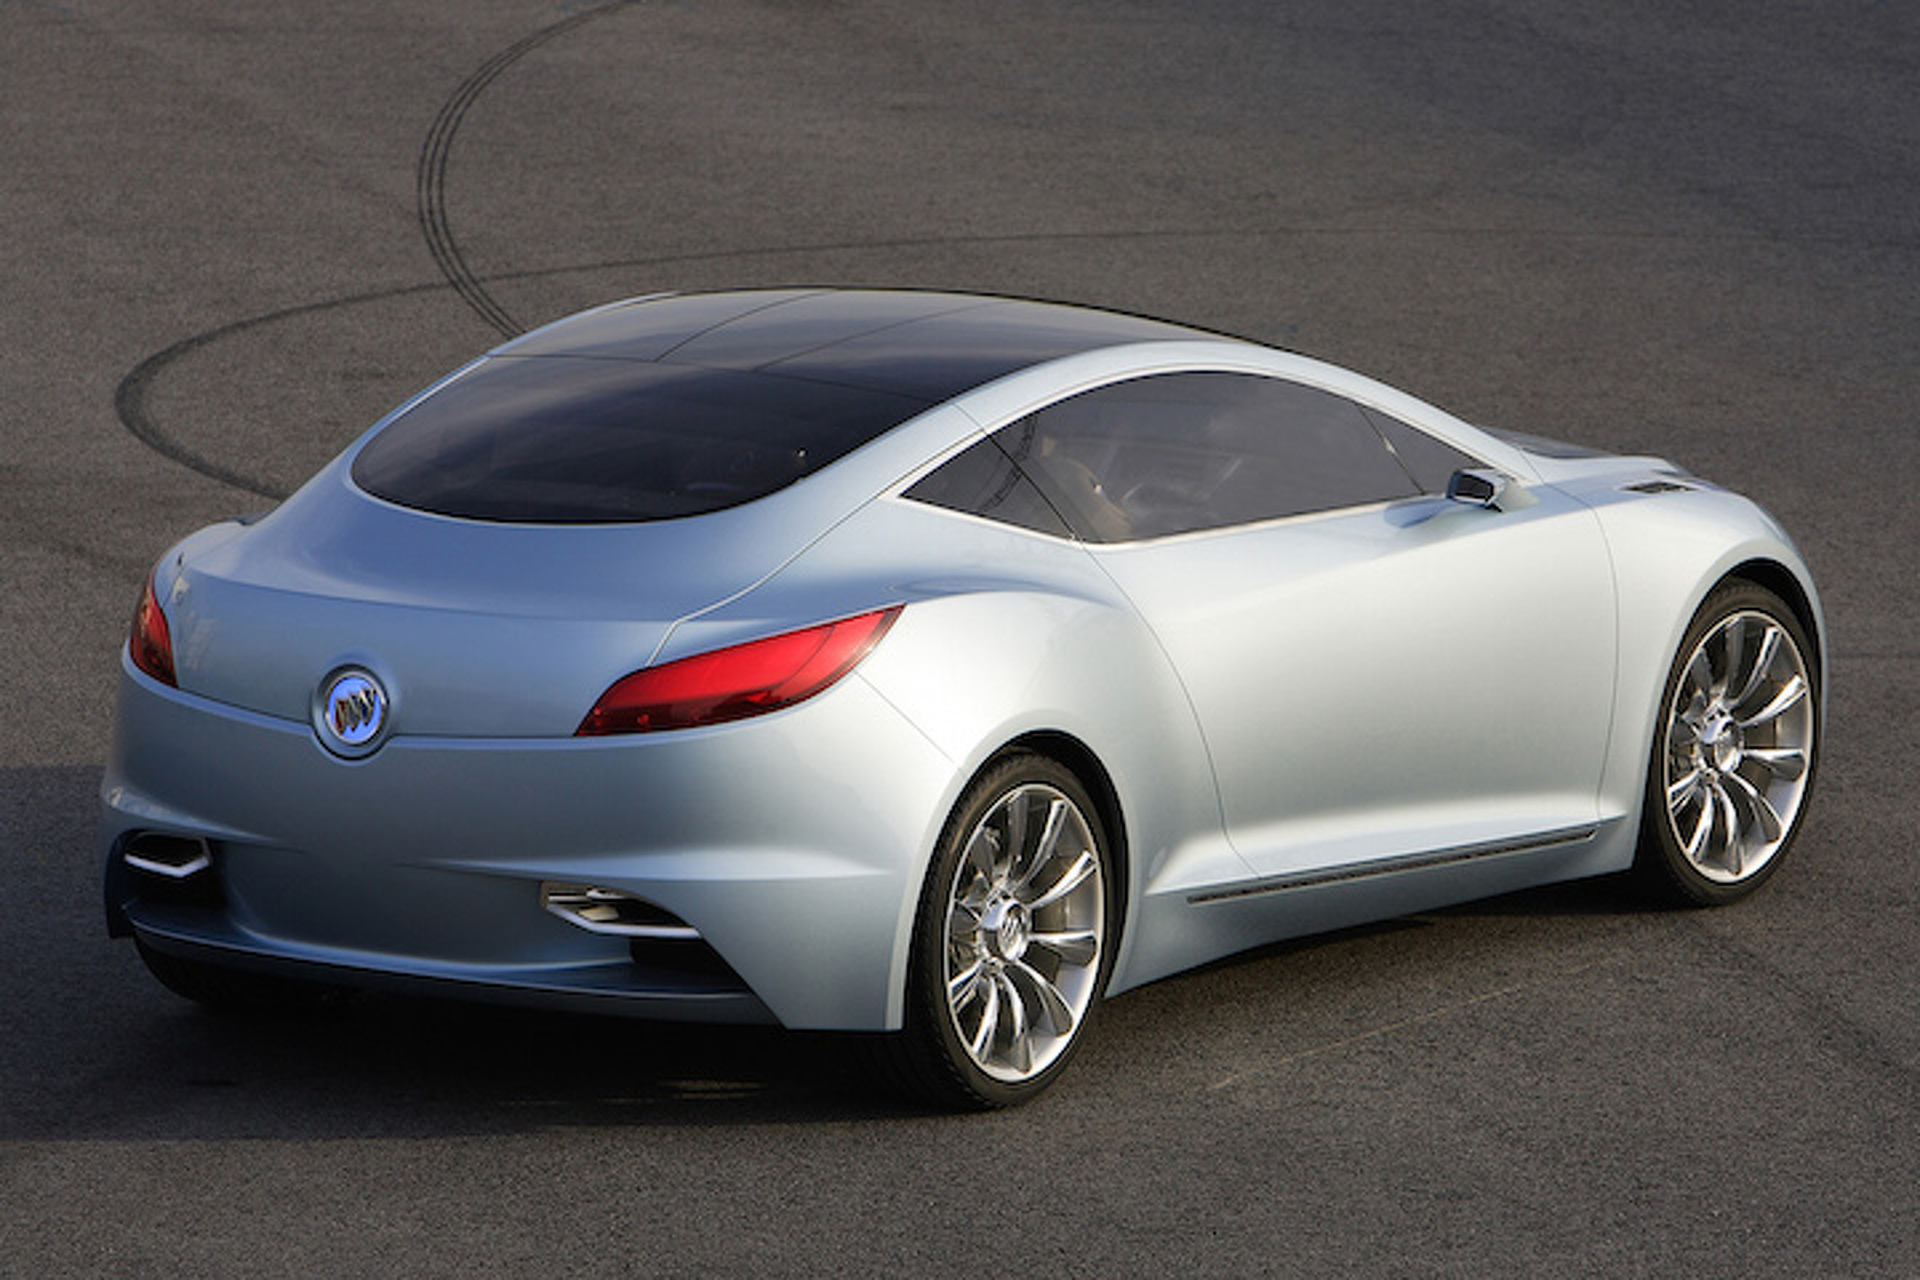 New Buick Sports Car Concept Aims to Attract Younger Buyers